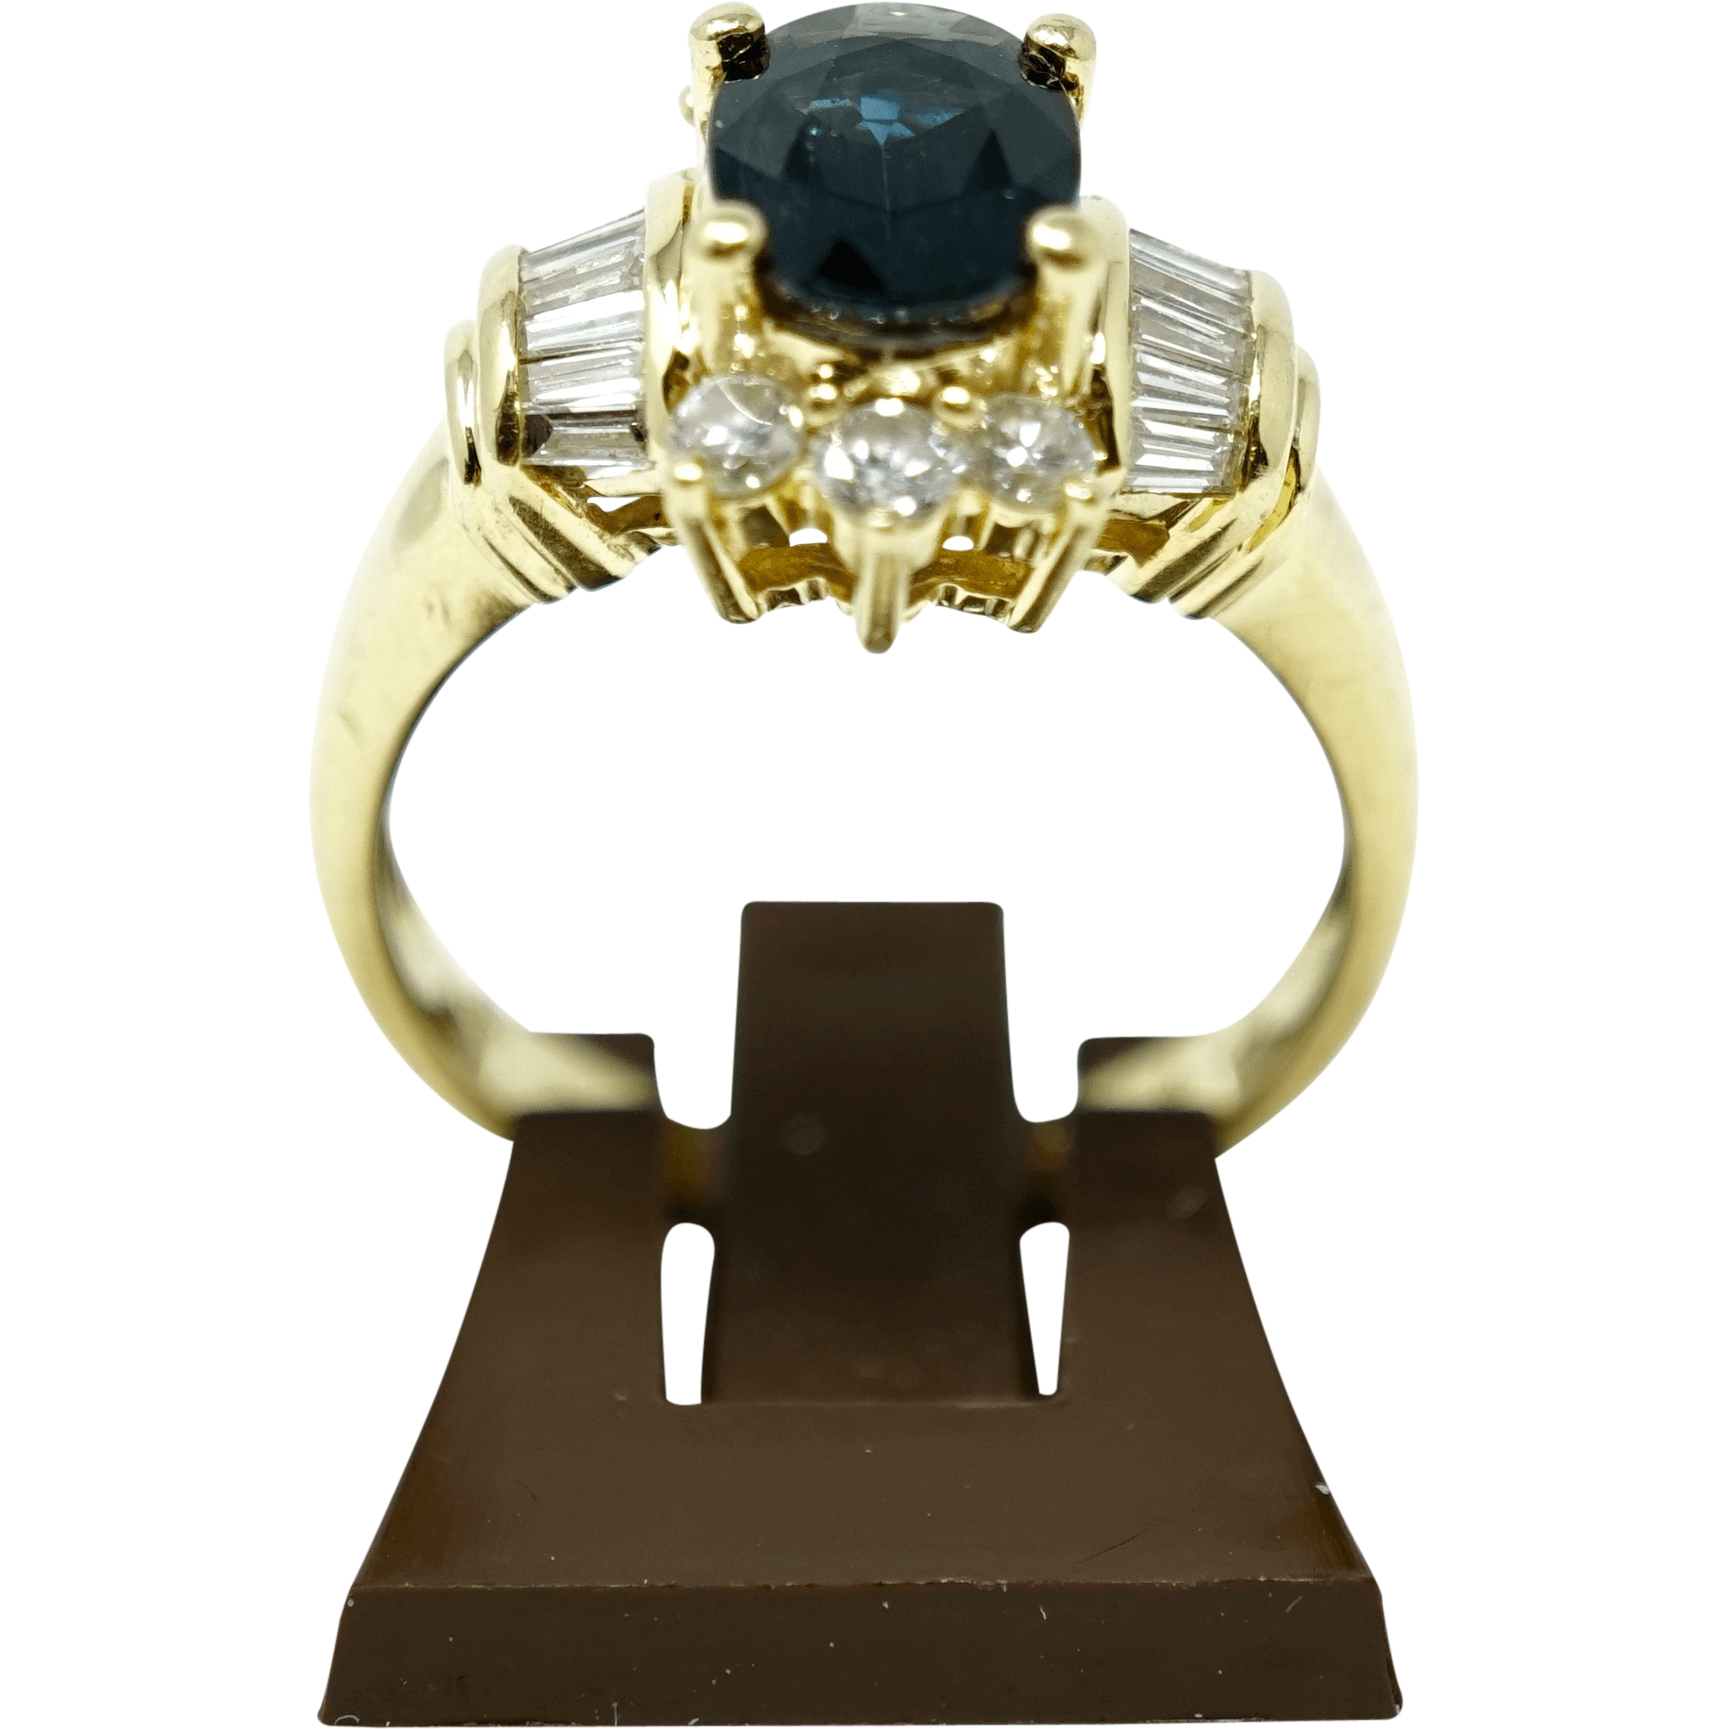 18 karat Solid Yellow Gold Ladies Ring with Genuine Sapphire & Fancy Cut Diamond Gemstones